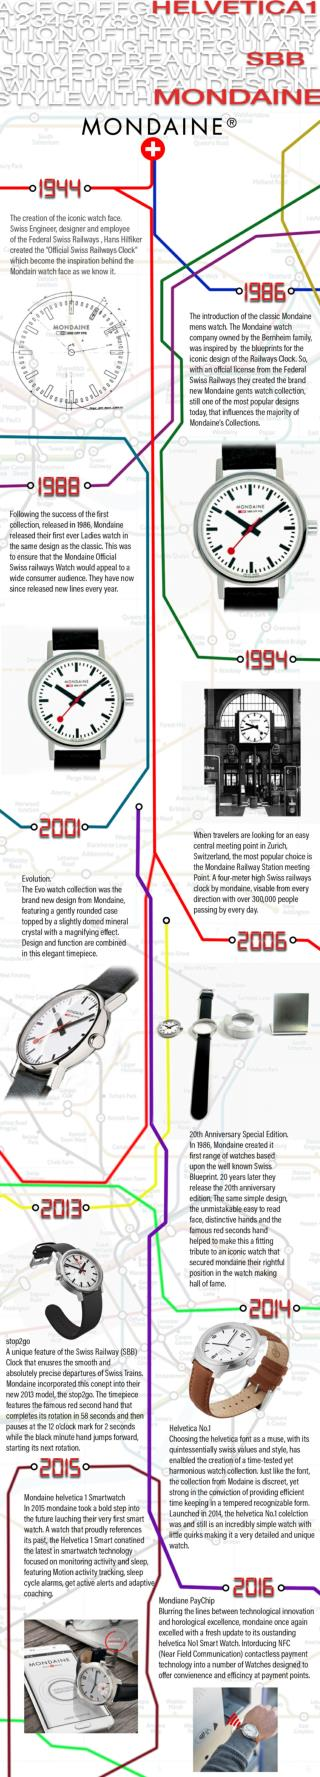 Mondaine Watches Infographic